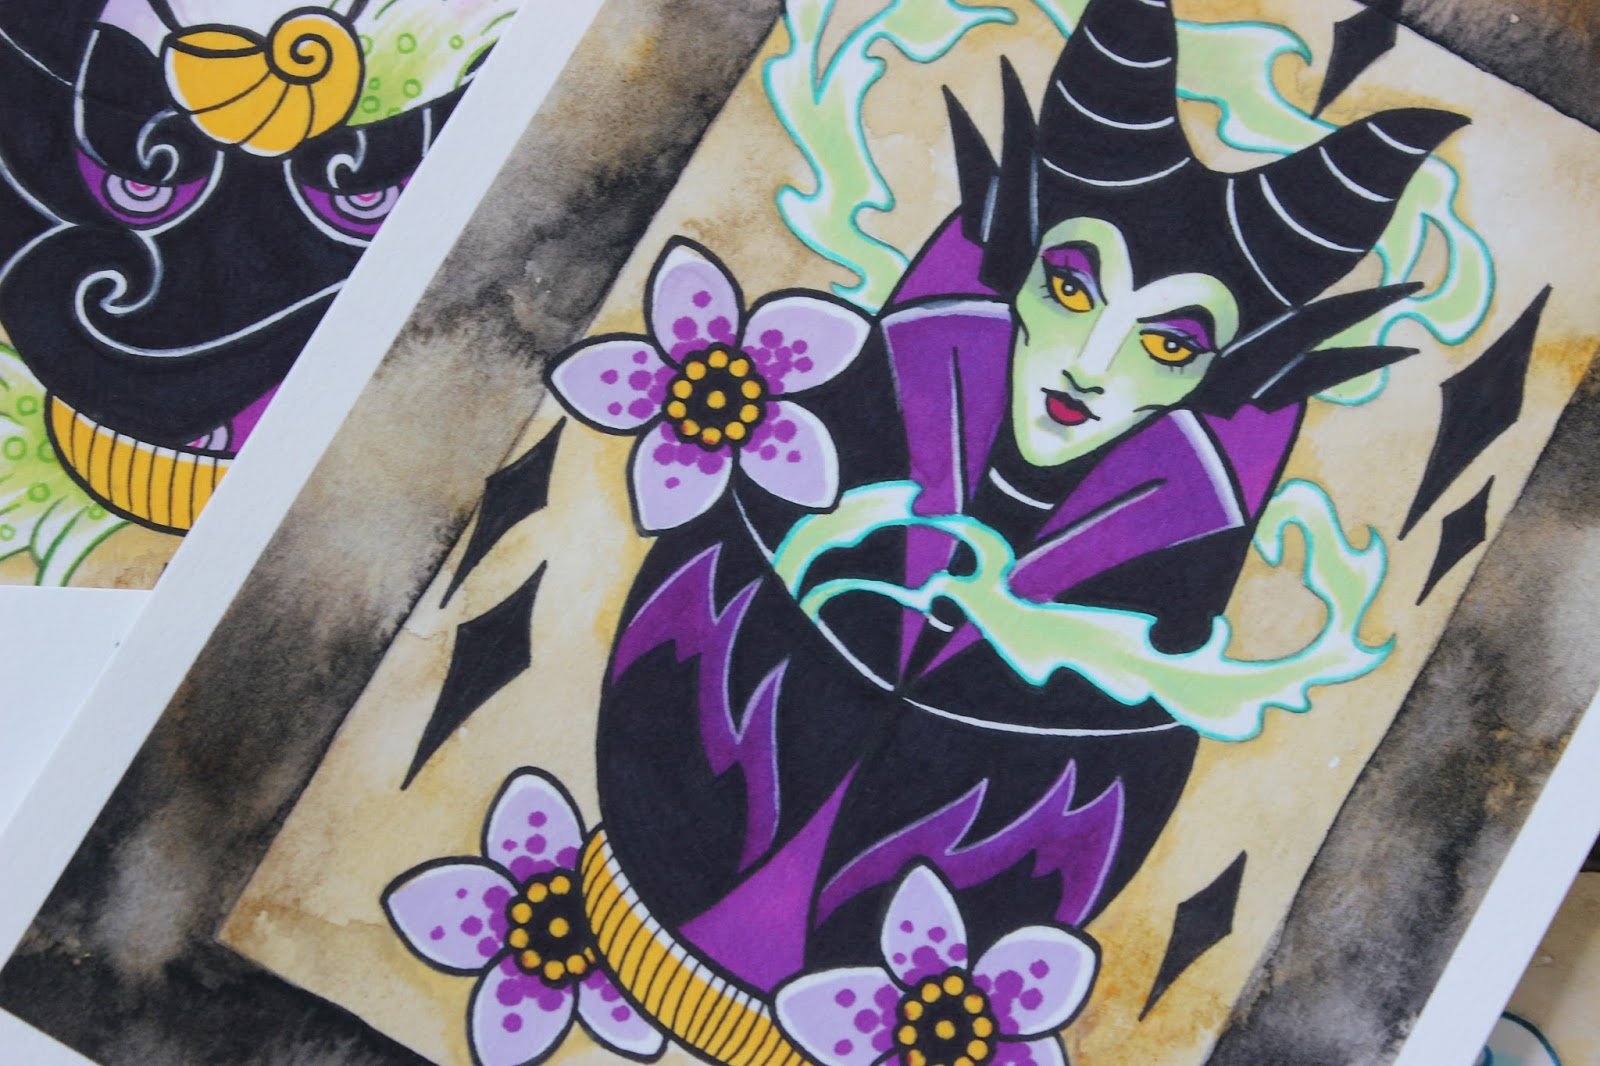 A picture of Disney Villain Maleficent by Vicky Morgan